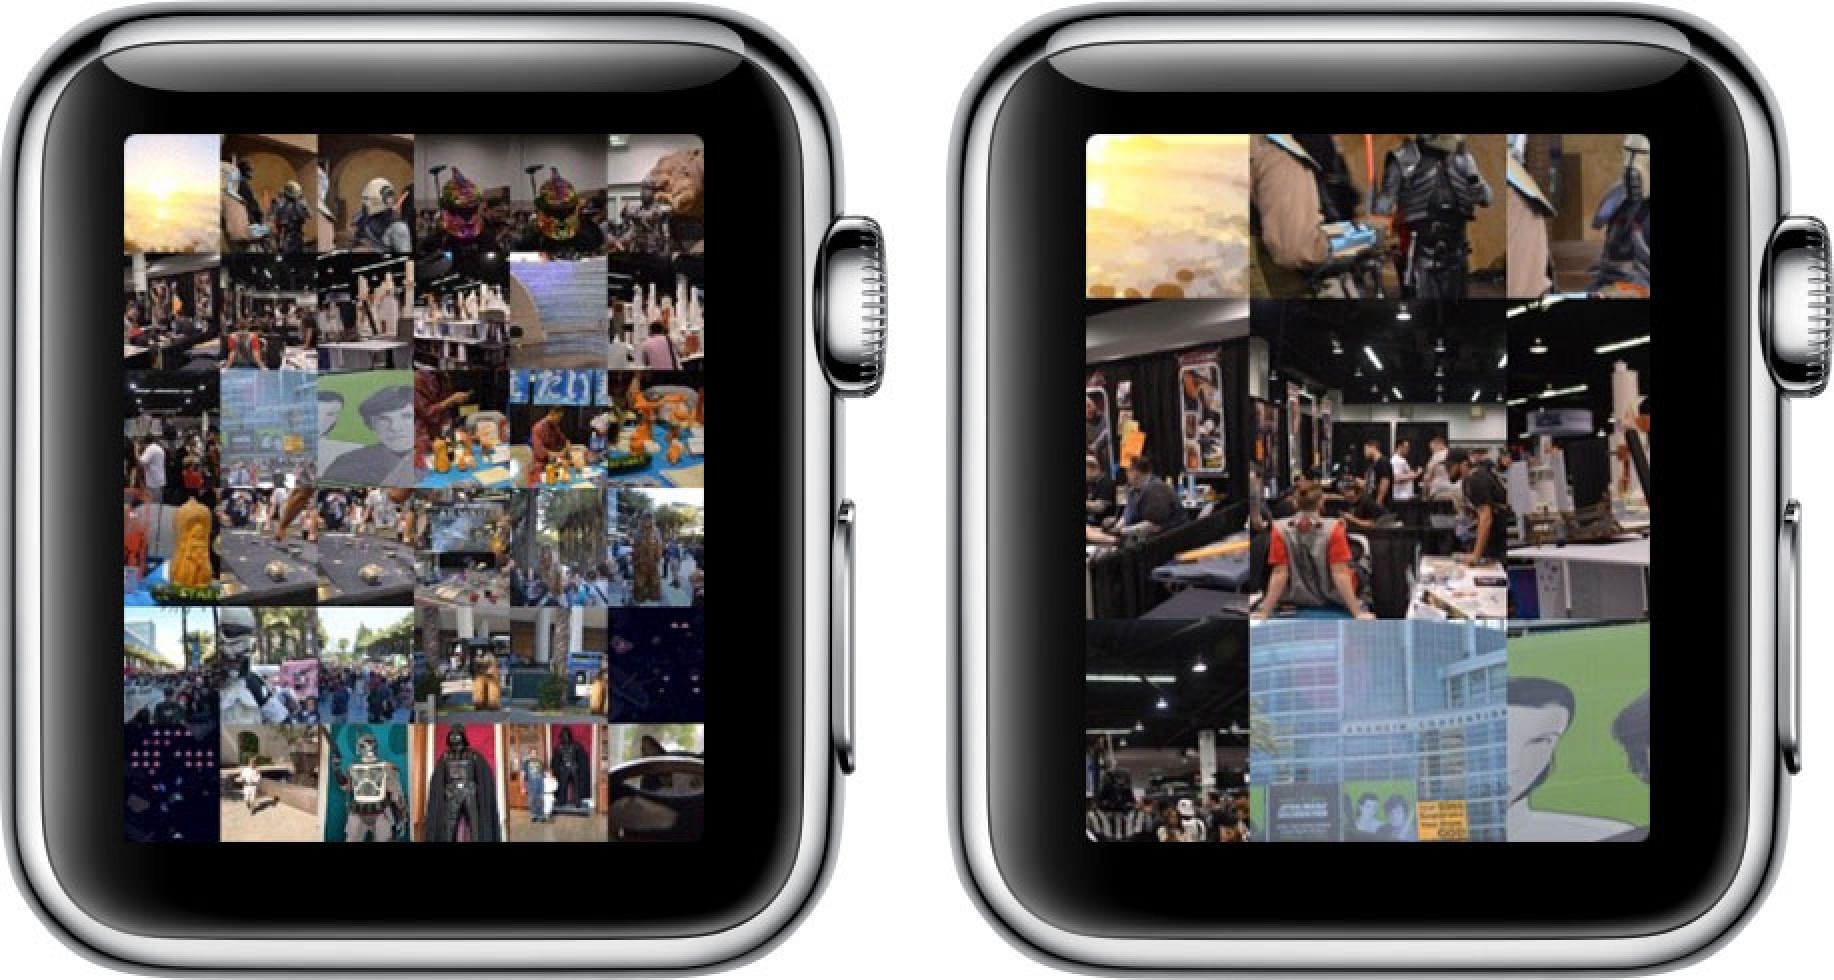 How To View Photos On Apple Watch Macrumors